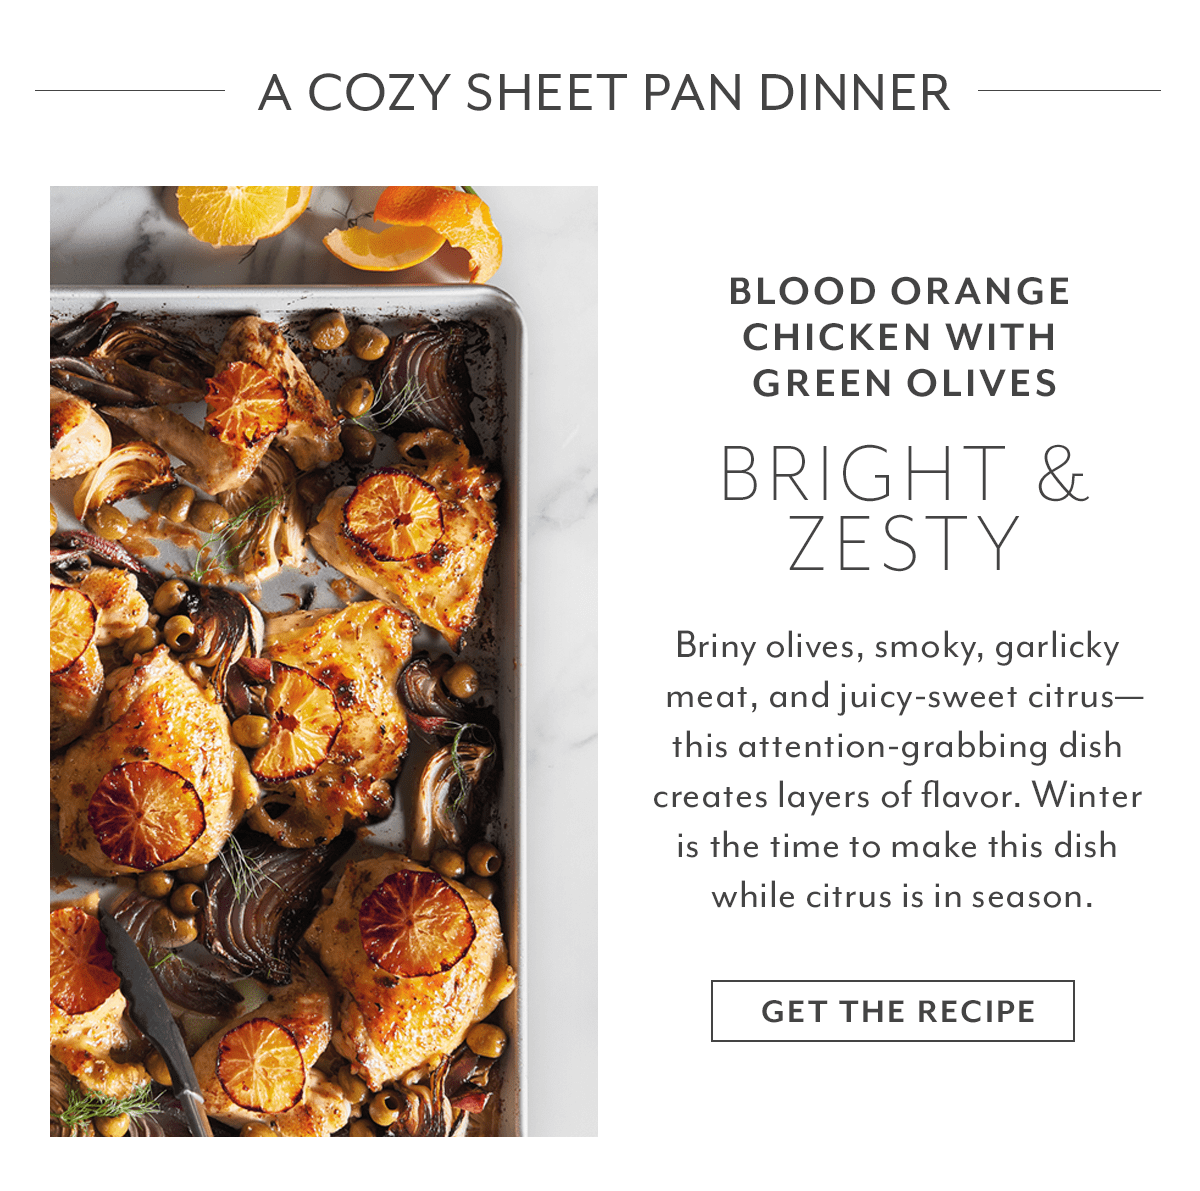 Recipe - Blood Orange Chicken with Green Olives